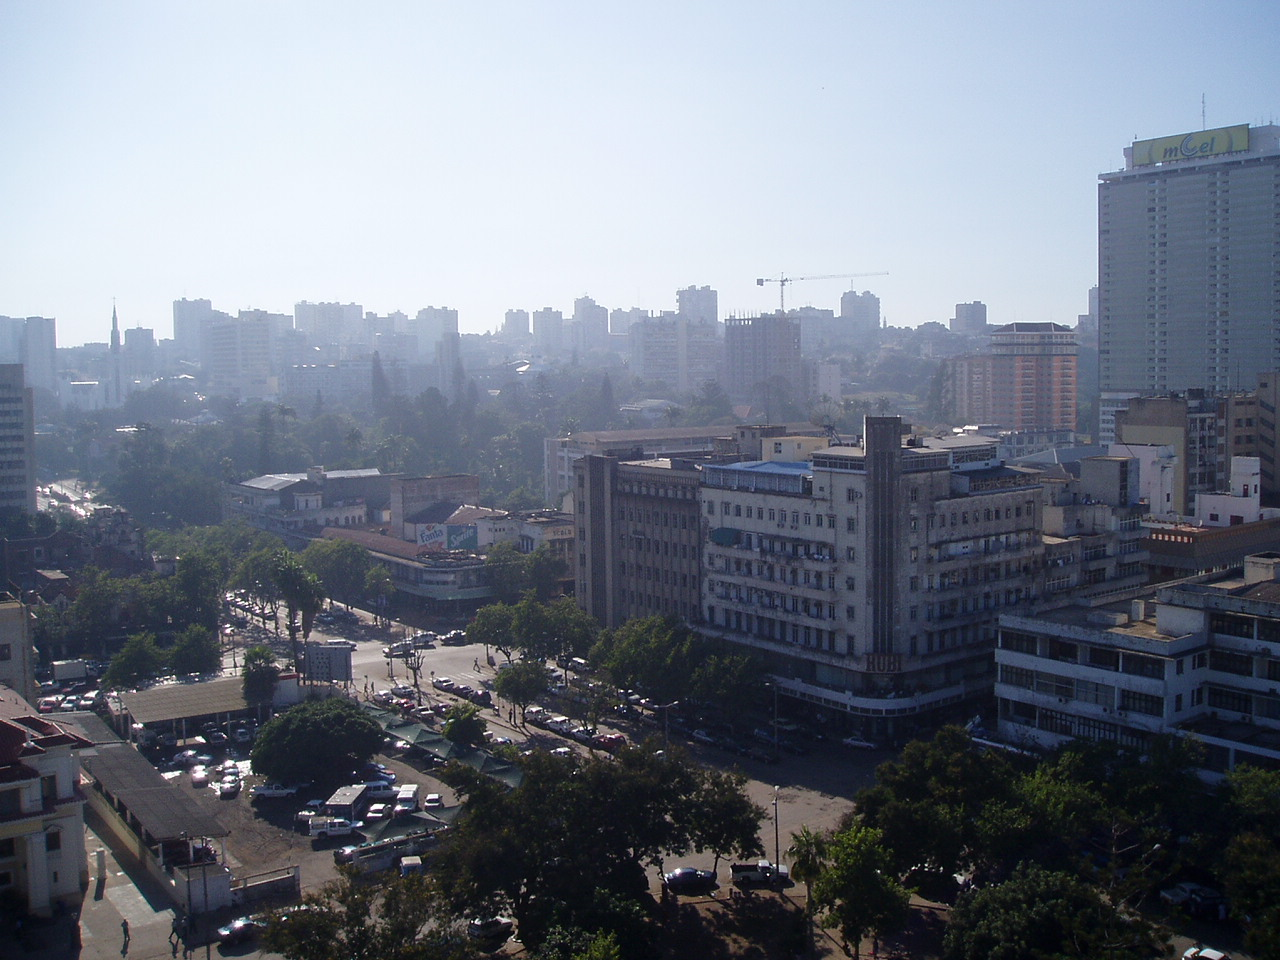 File:Maputo, Mozambique view.jpg - Wikipedia